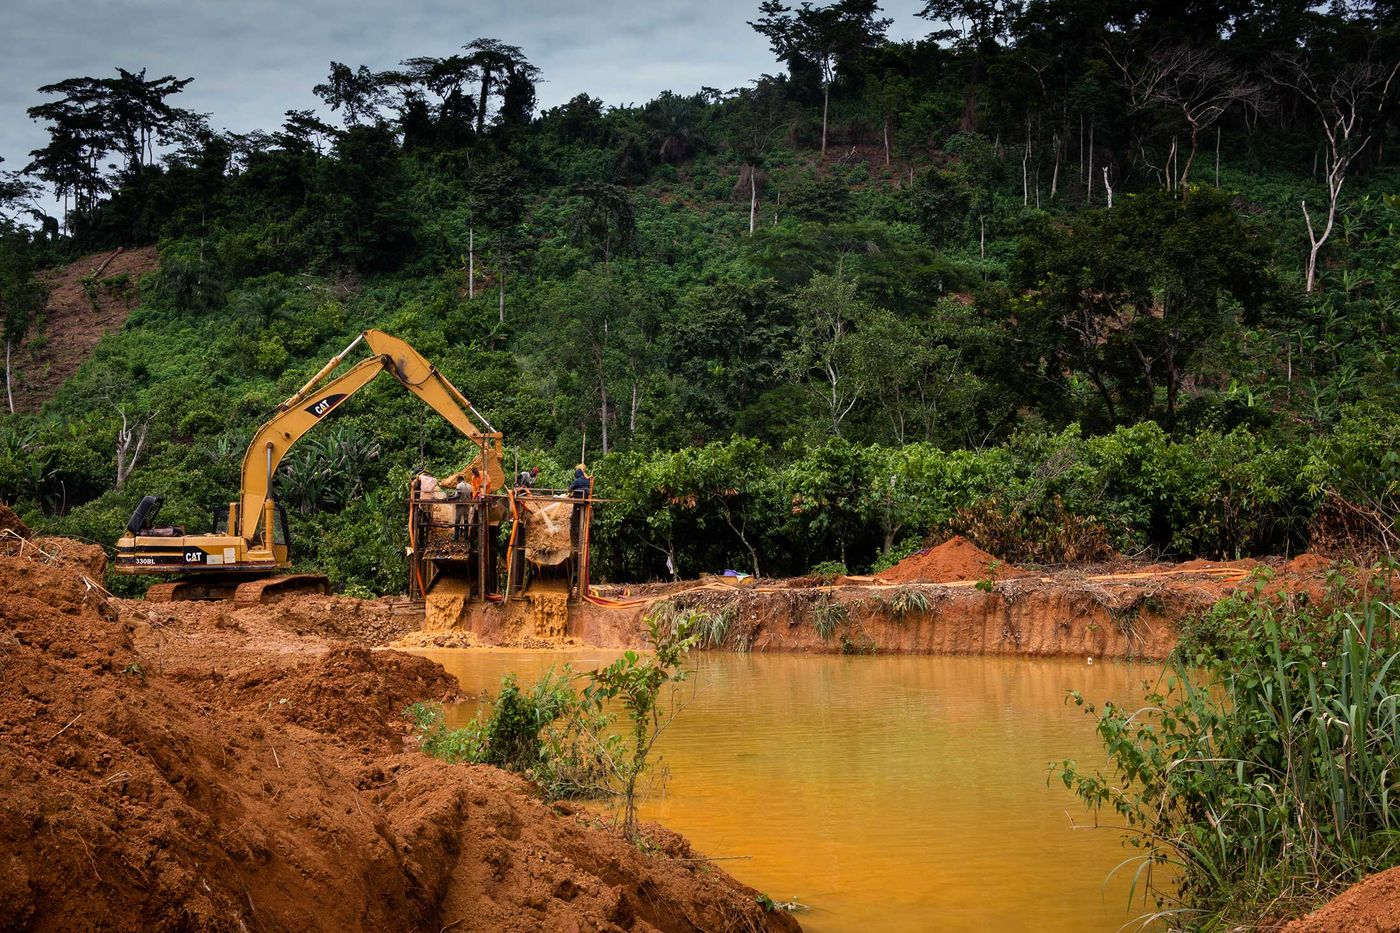 A small-scale mining operation in Kibi, Ghana. PHOTOGRAPHER: RUTH MCDOWALL FOR BLOOMBERG BUSINESSWEEK